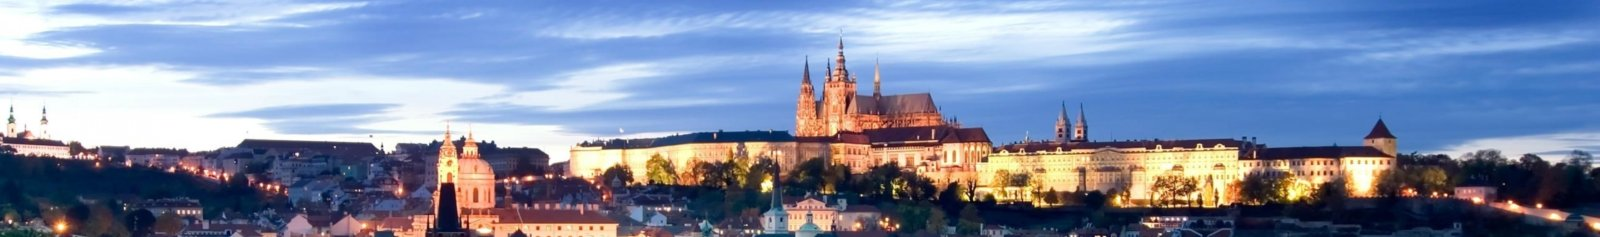 , Traveler's Guide to the Best Entertainment Options in Prague